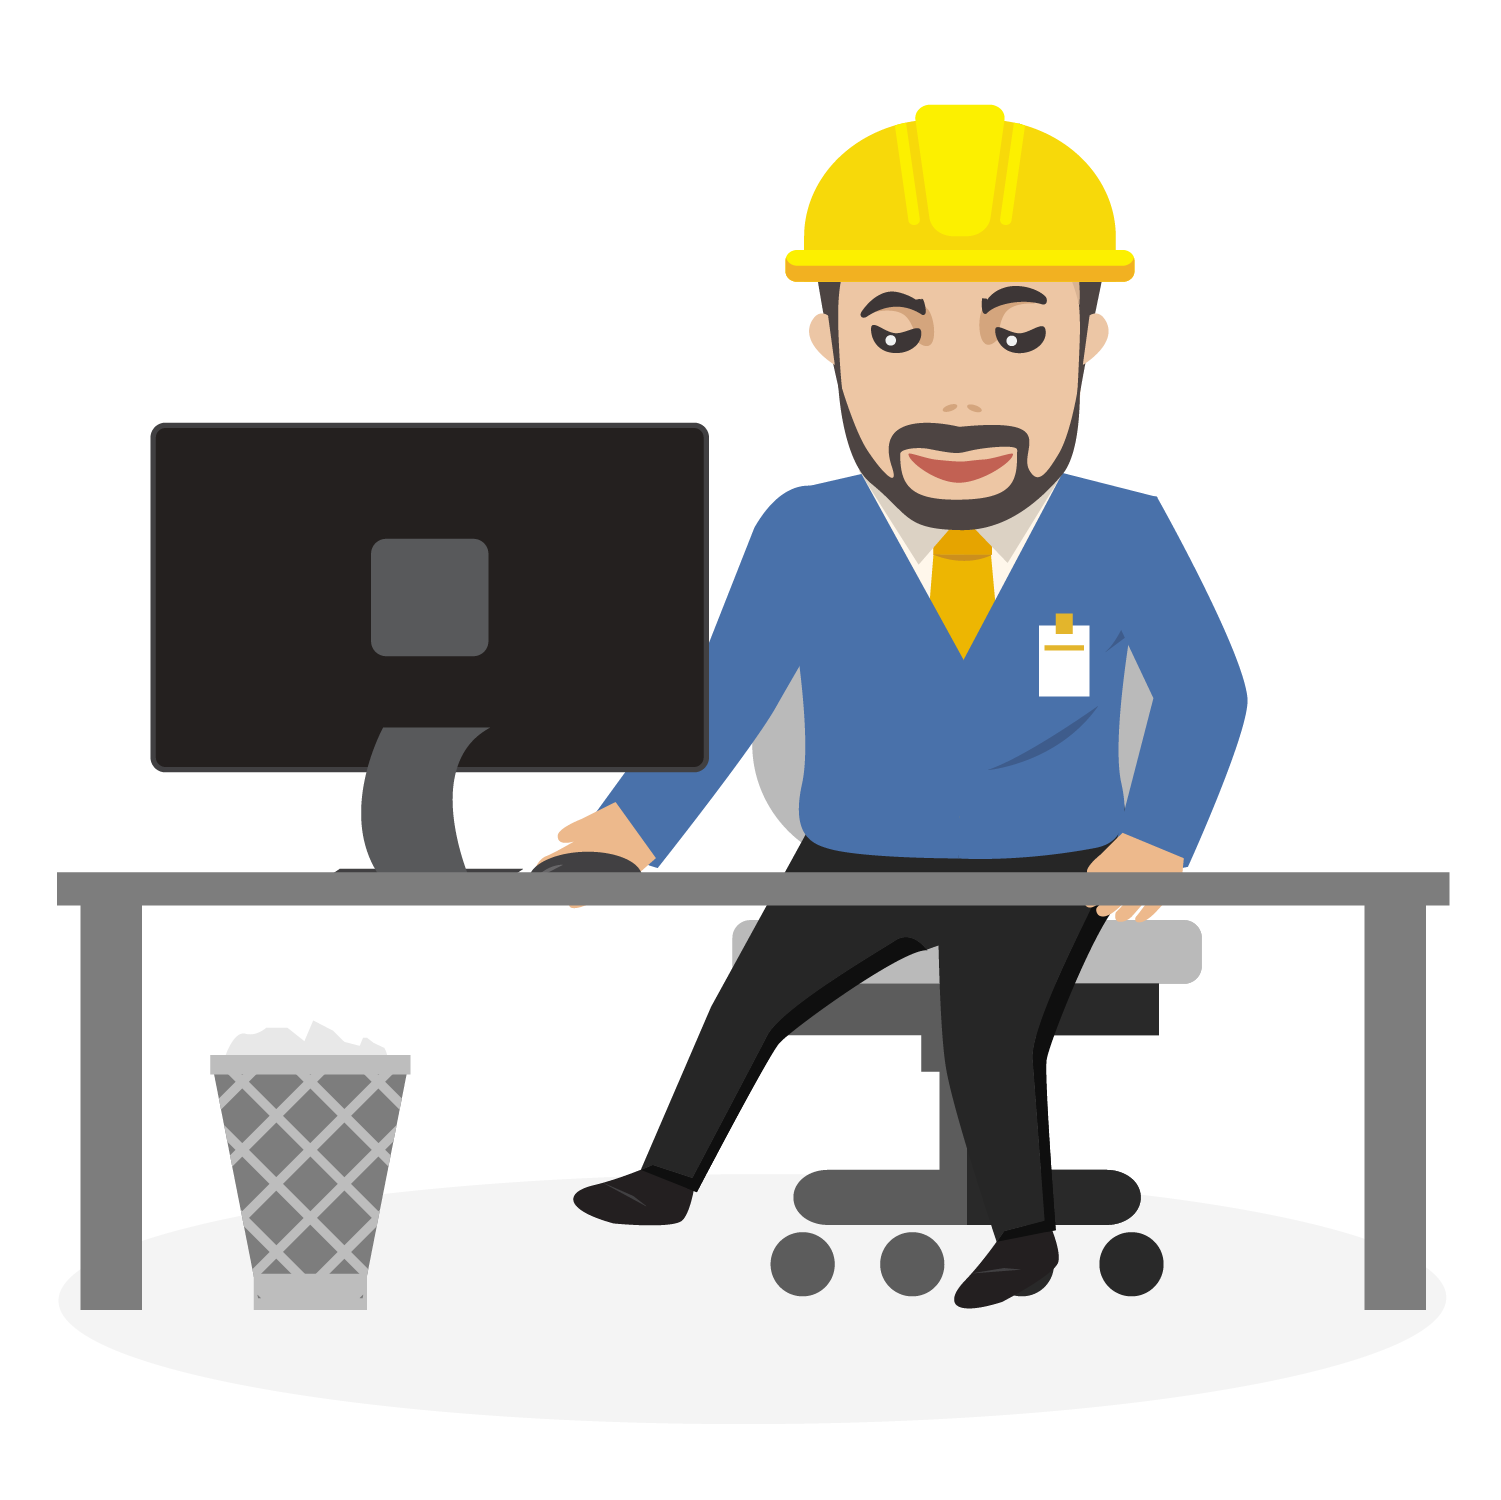 Contractor clipart construction management. Join our network of